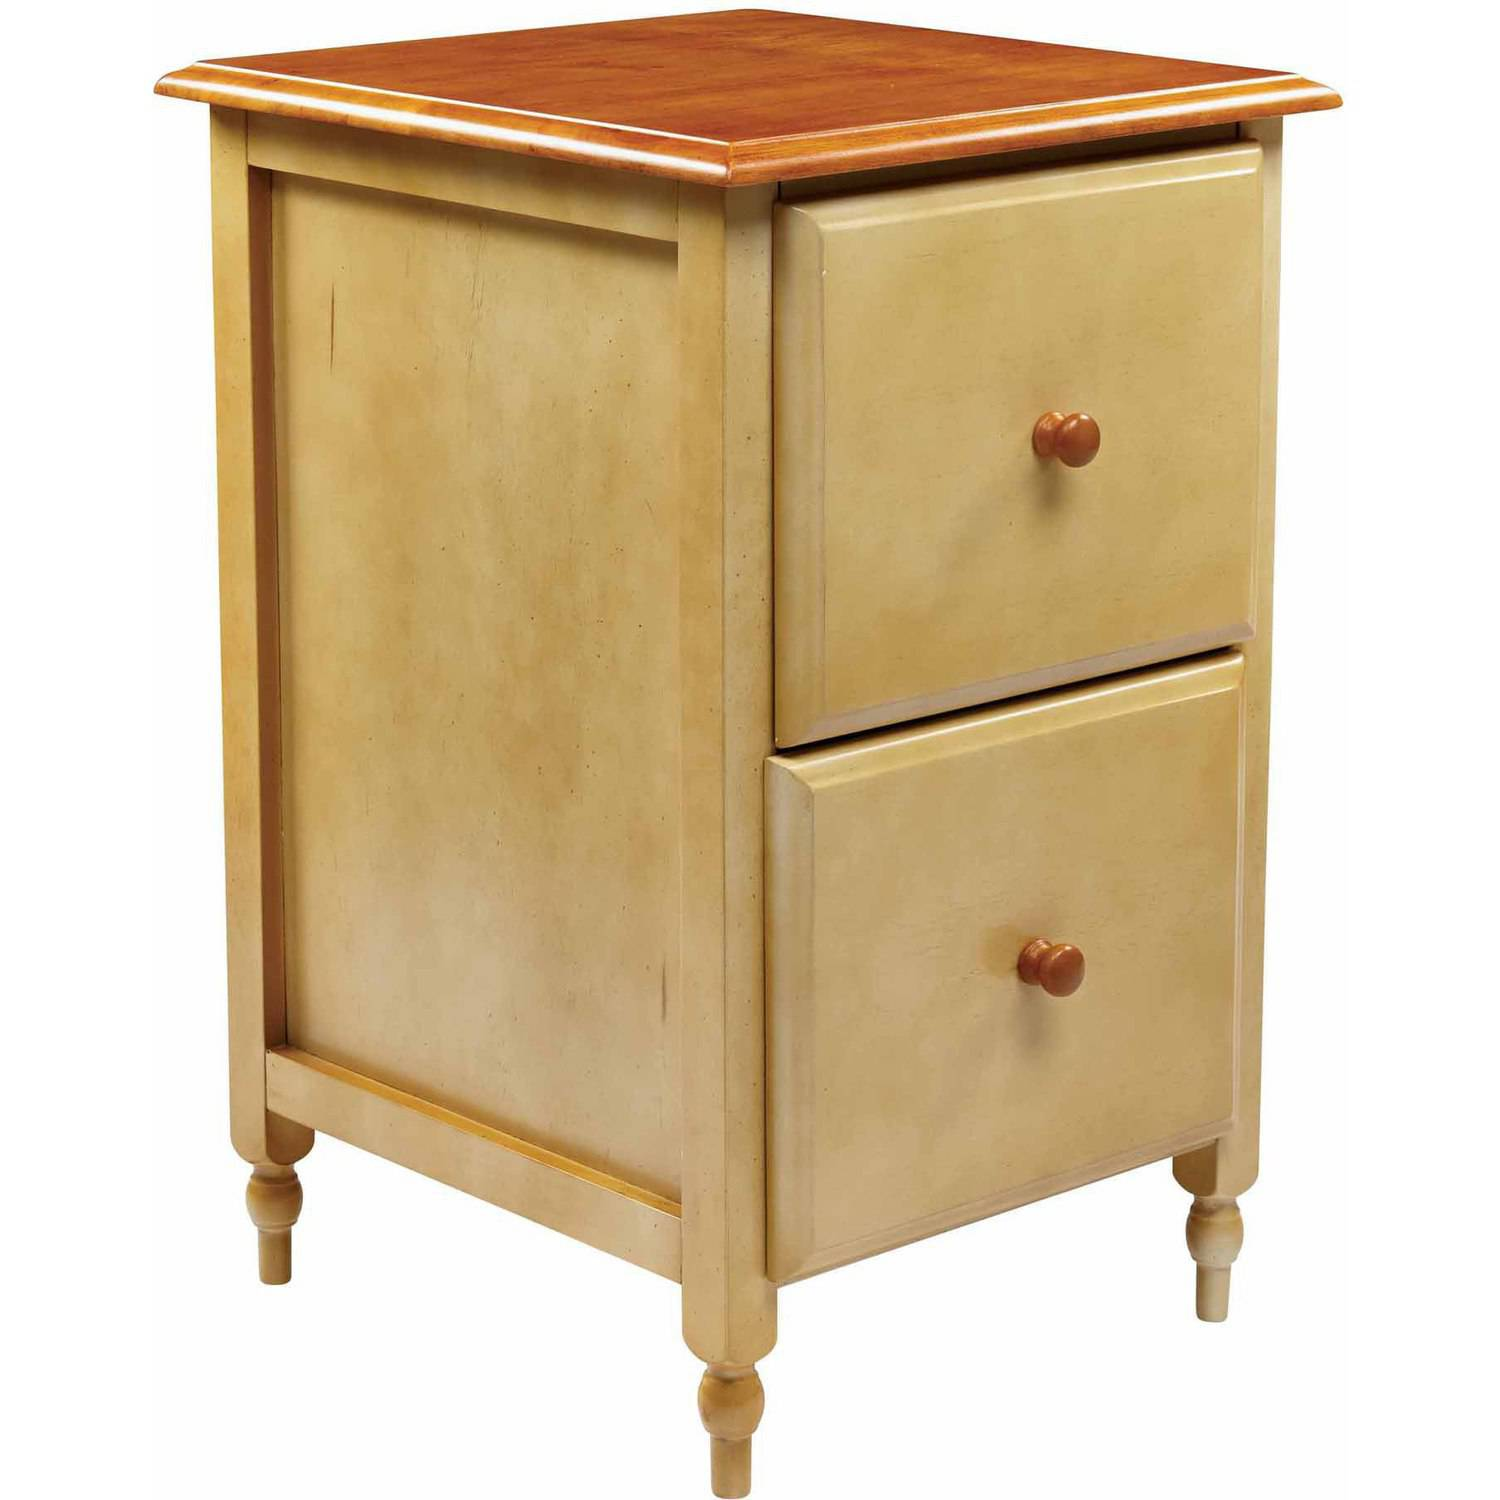 OSP Design File Cabinet, Country Cottage Buttermilk and Cherry Finish